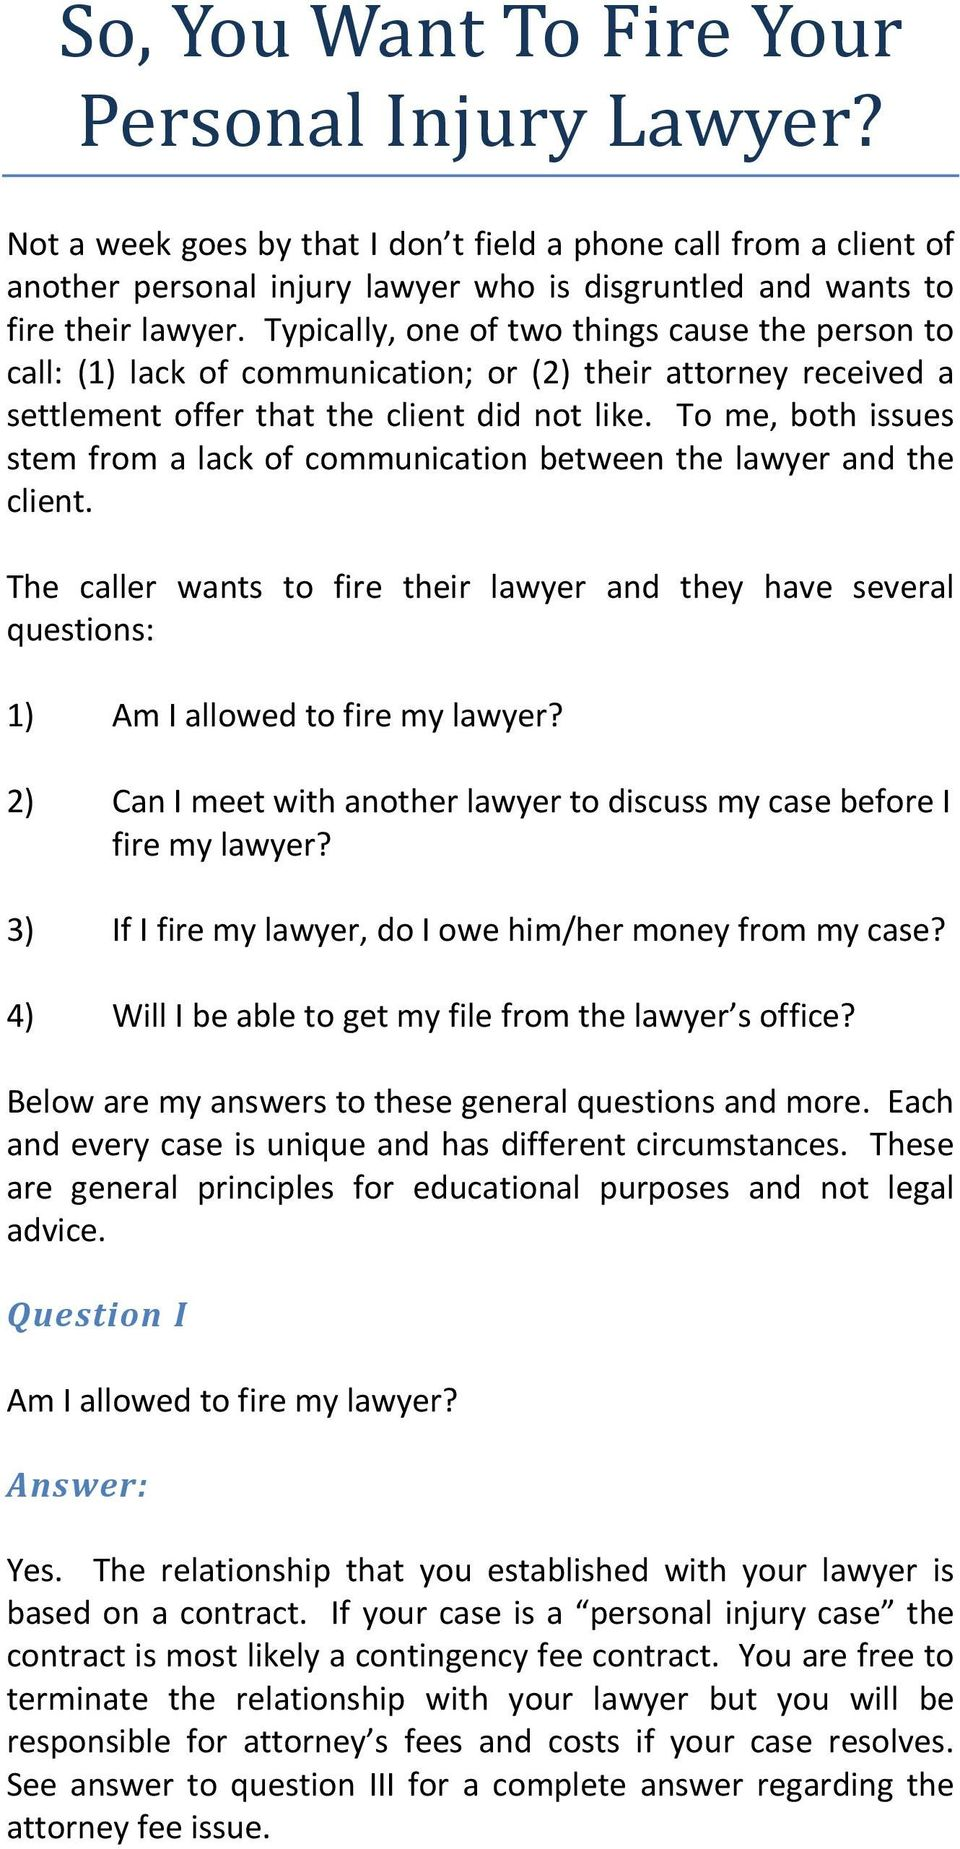 To me, both issues stem from a lack of communication between the lawyer and the client. The caller wants to fire their lawyer and they have several questions: 1) Am I allowed to fire my lawyer?